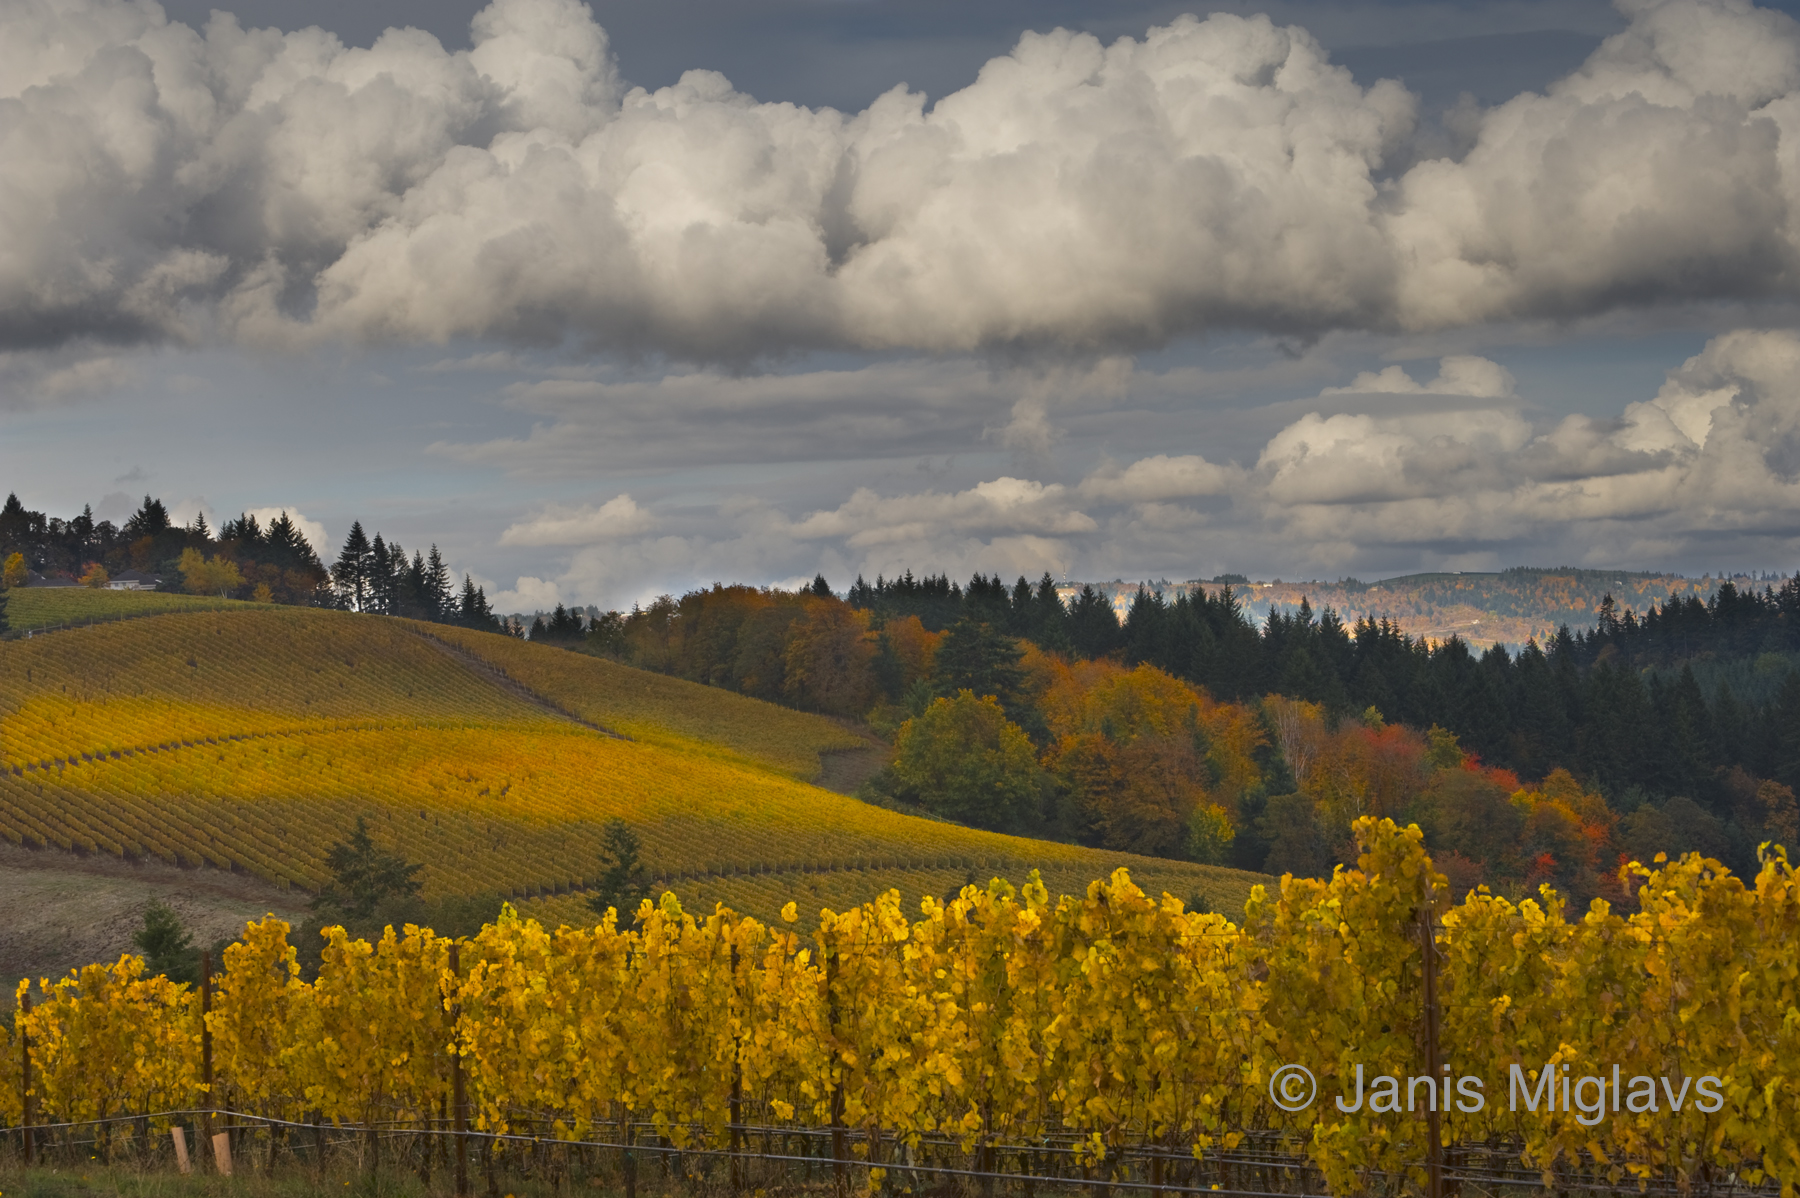 Clouds over Dundee Hills Vineyards